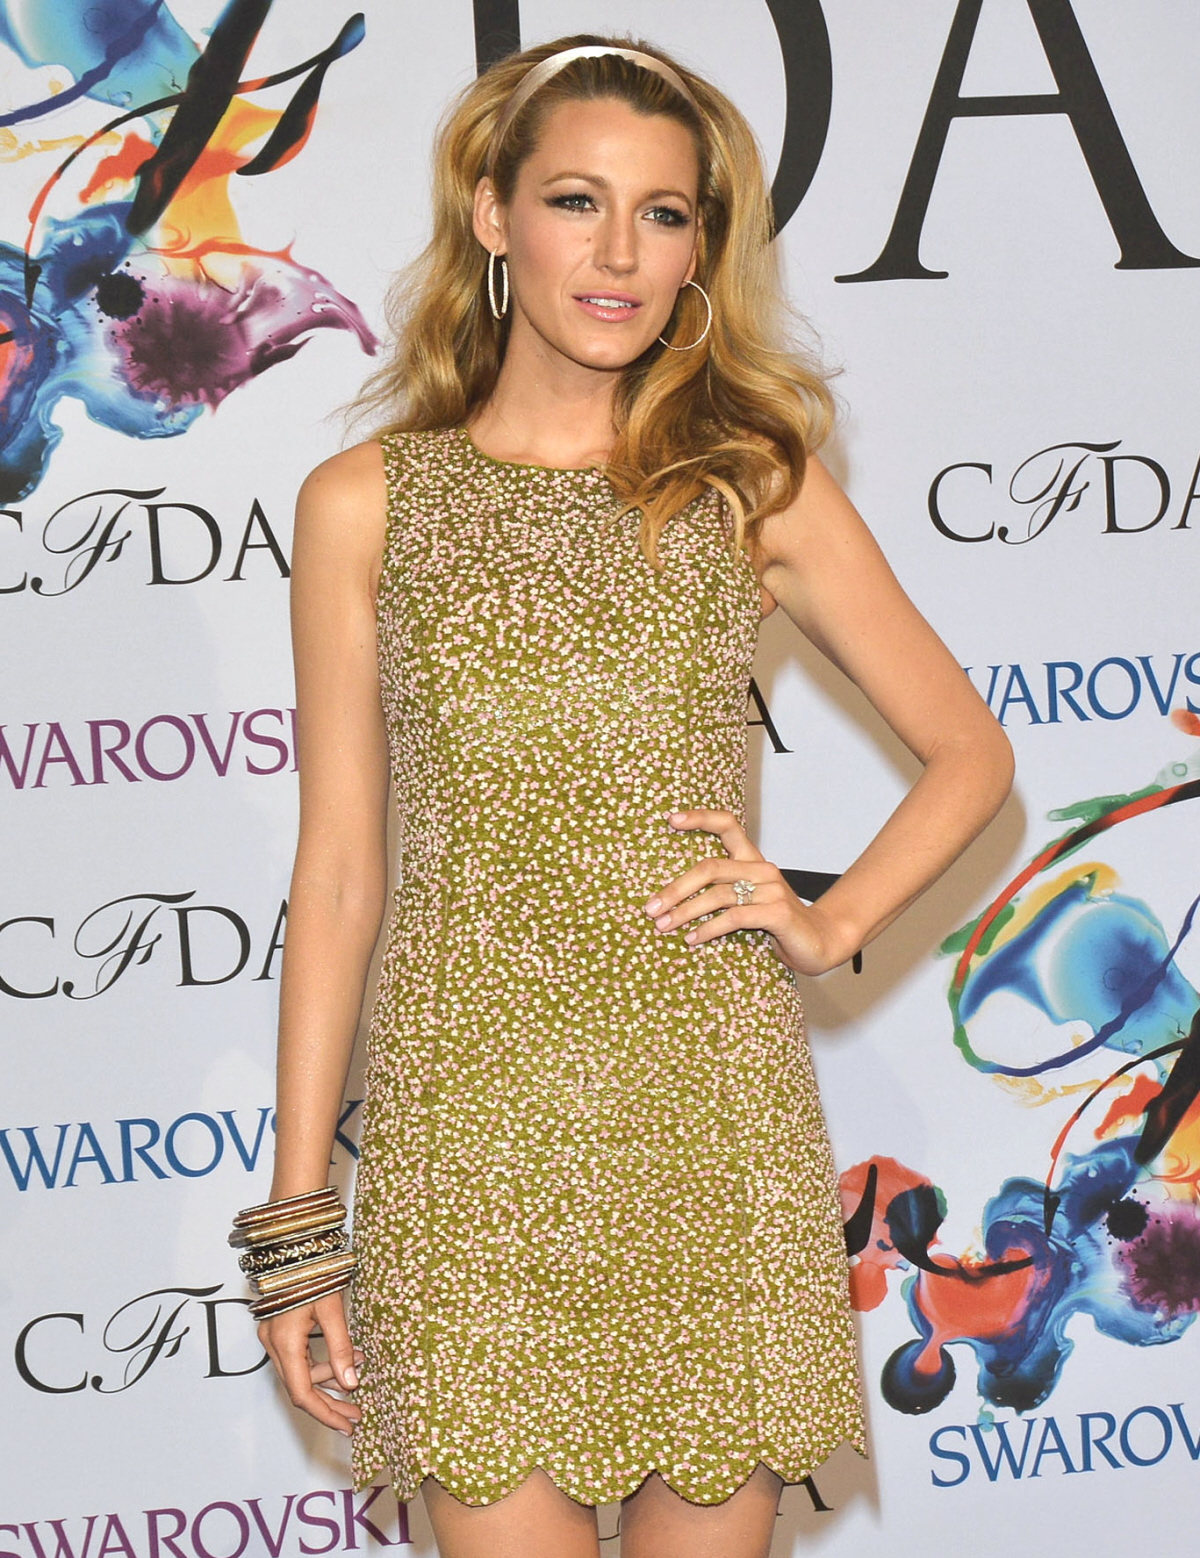 FFN_CFDA_Awards_NYC_060214_51437958